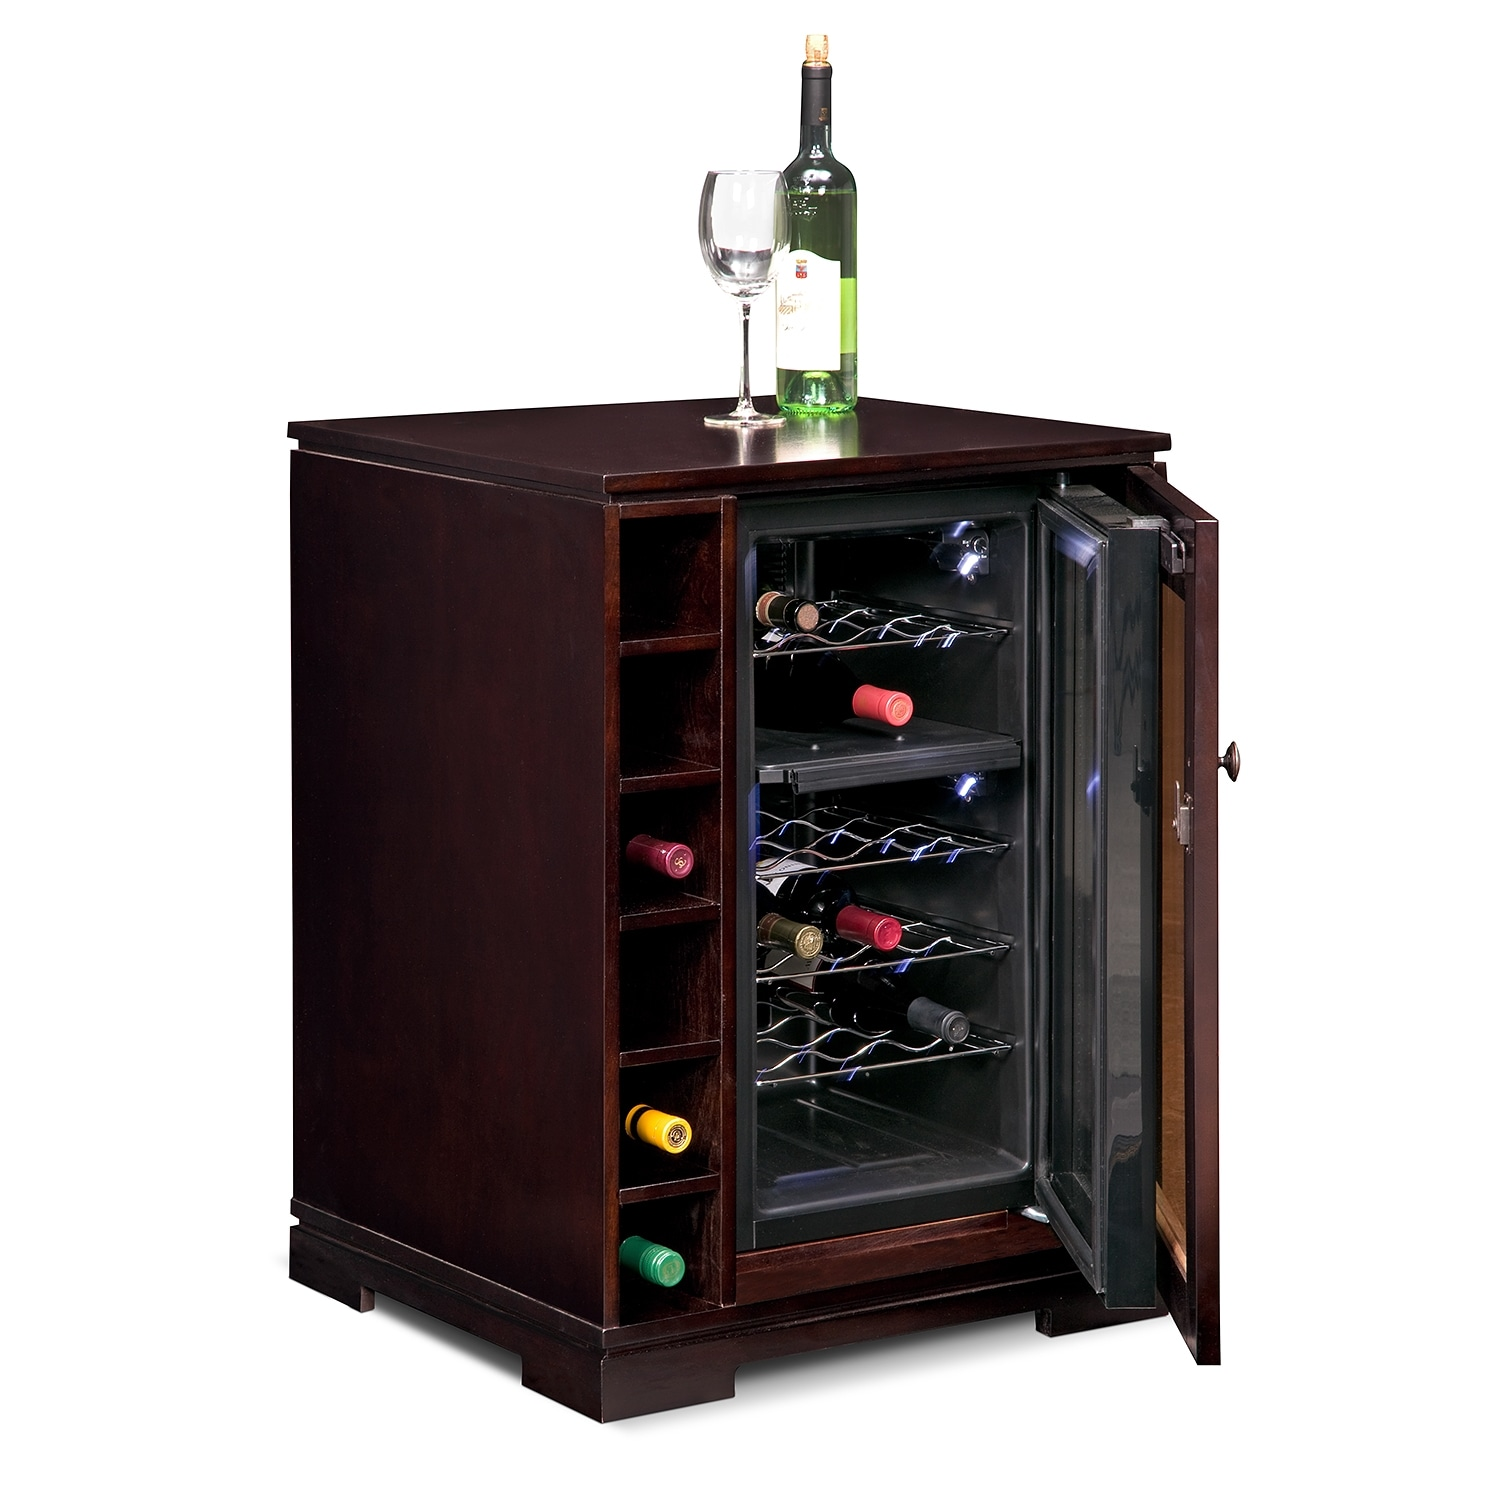 Small Cooling Unit : Small wine cabinet cooling units cabinets matttroy